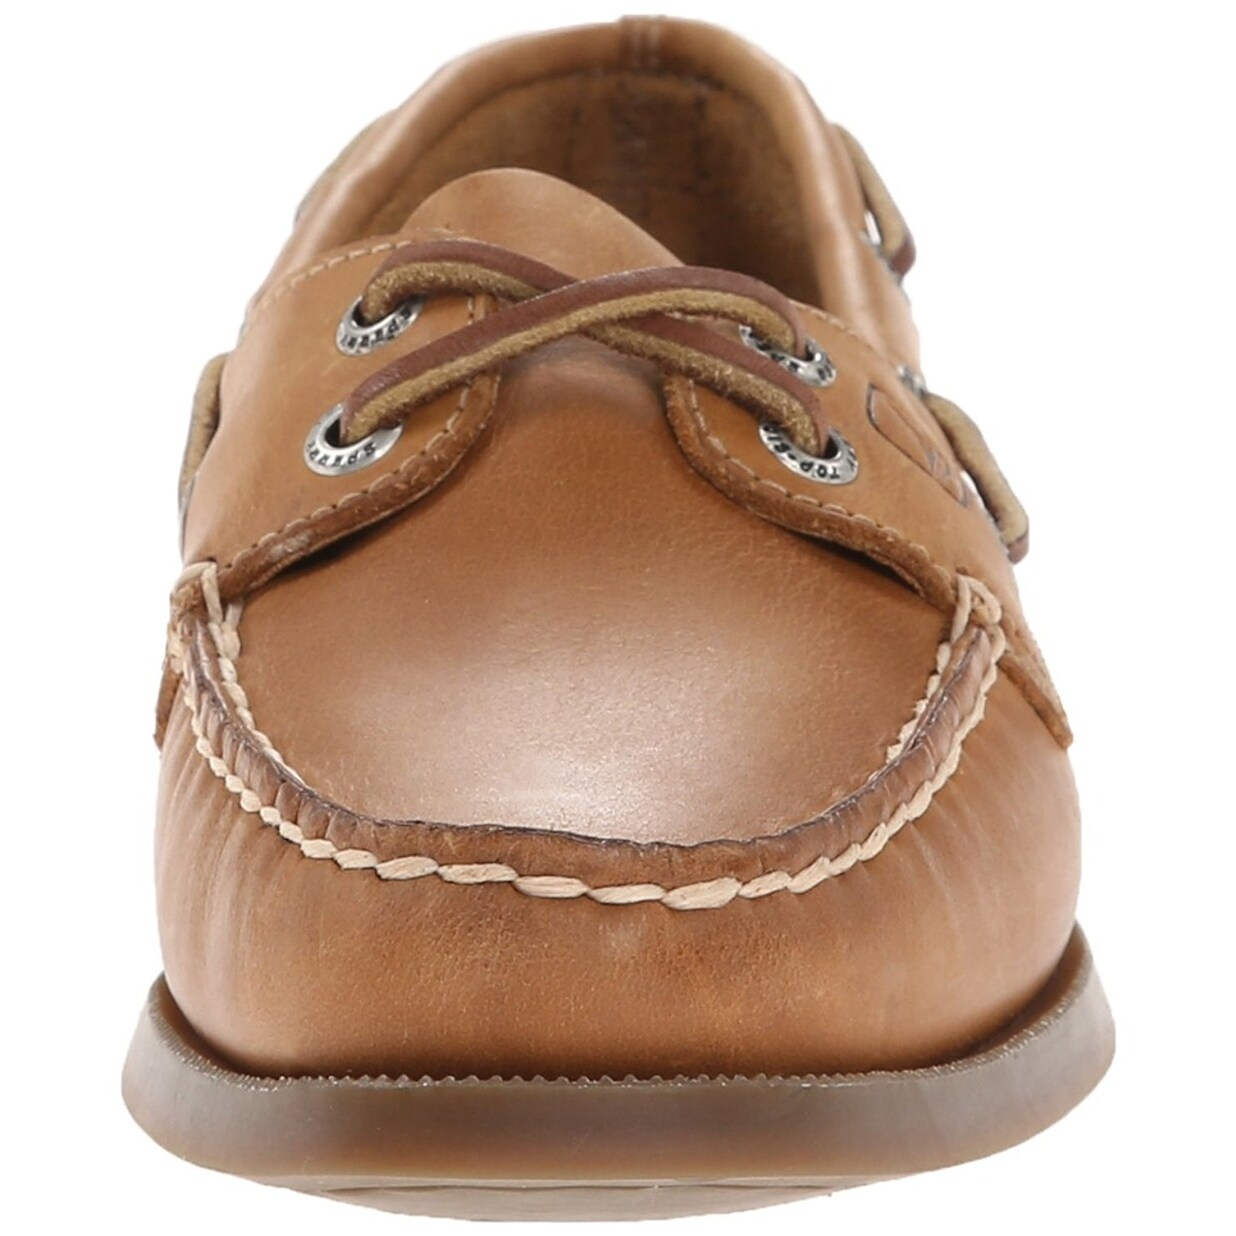 58739db3a81 Shop Sperry Top-Sider Women s Authentic Original Two-Eye Boat Shoe - Free  Shipping Today - Overstock - 20704277